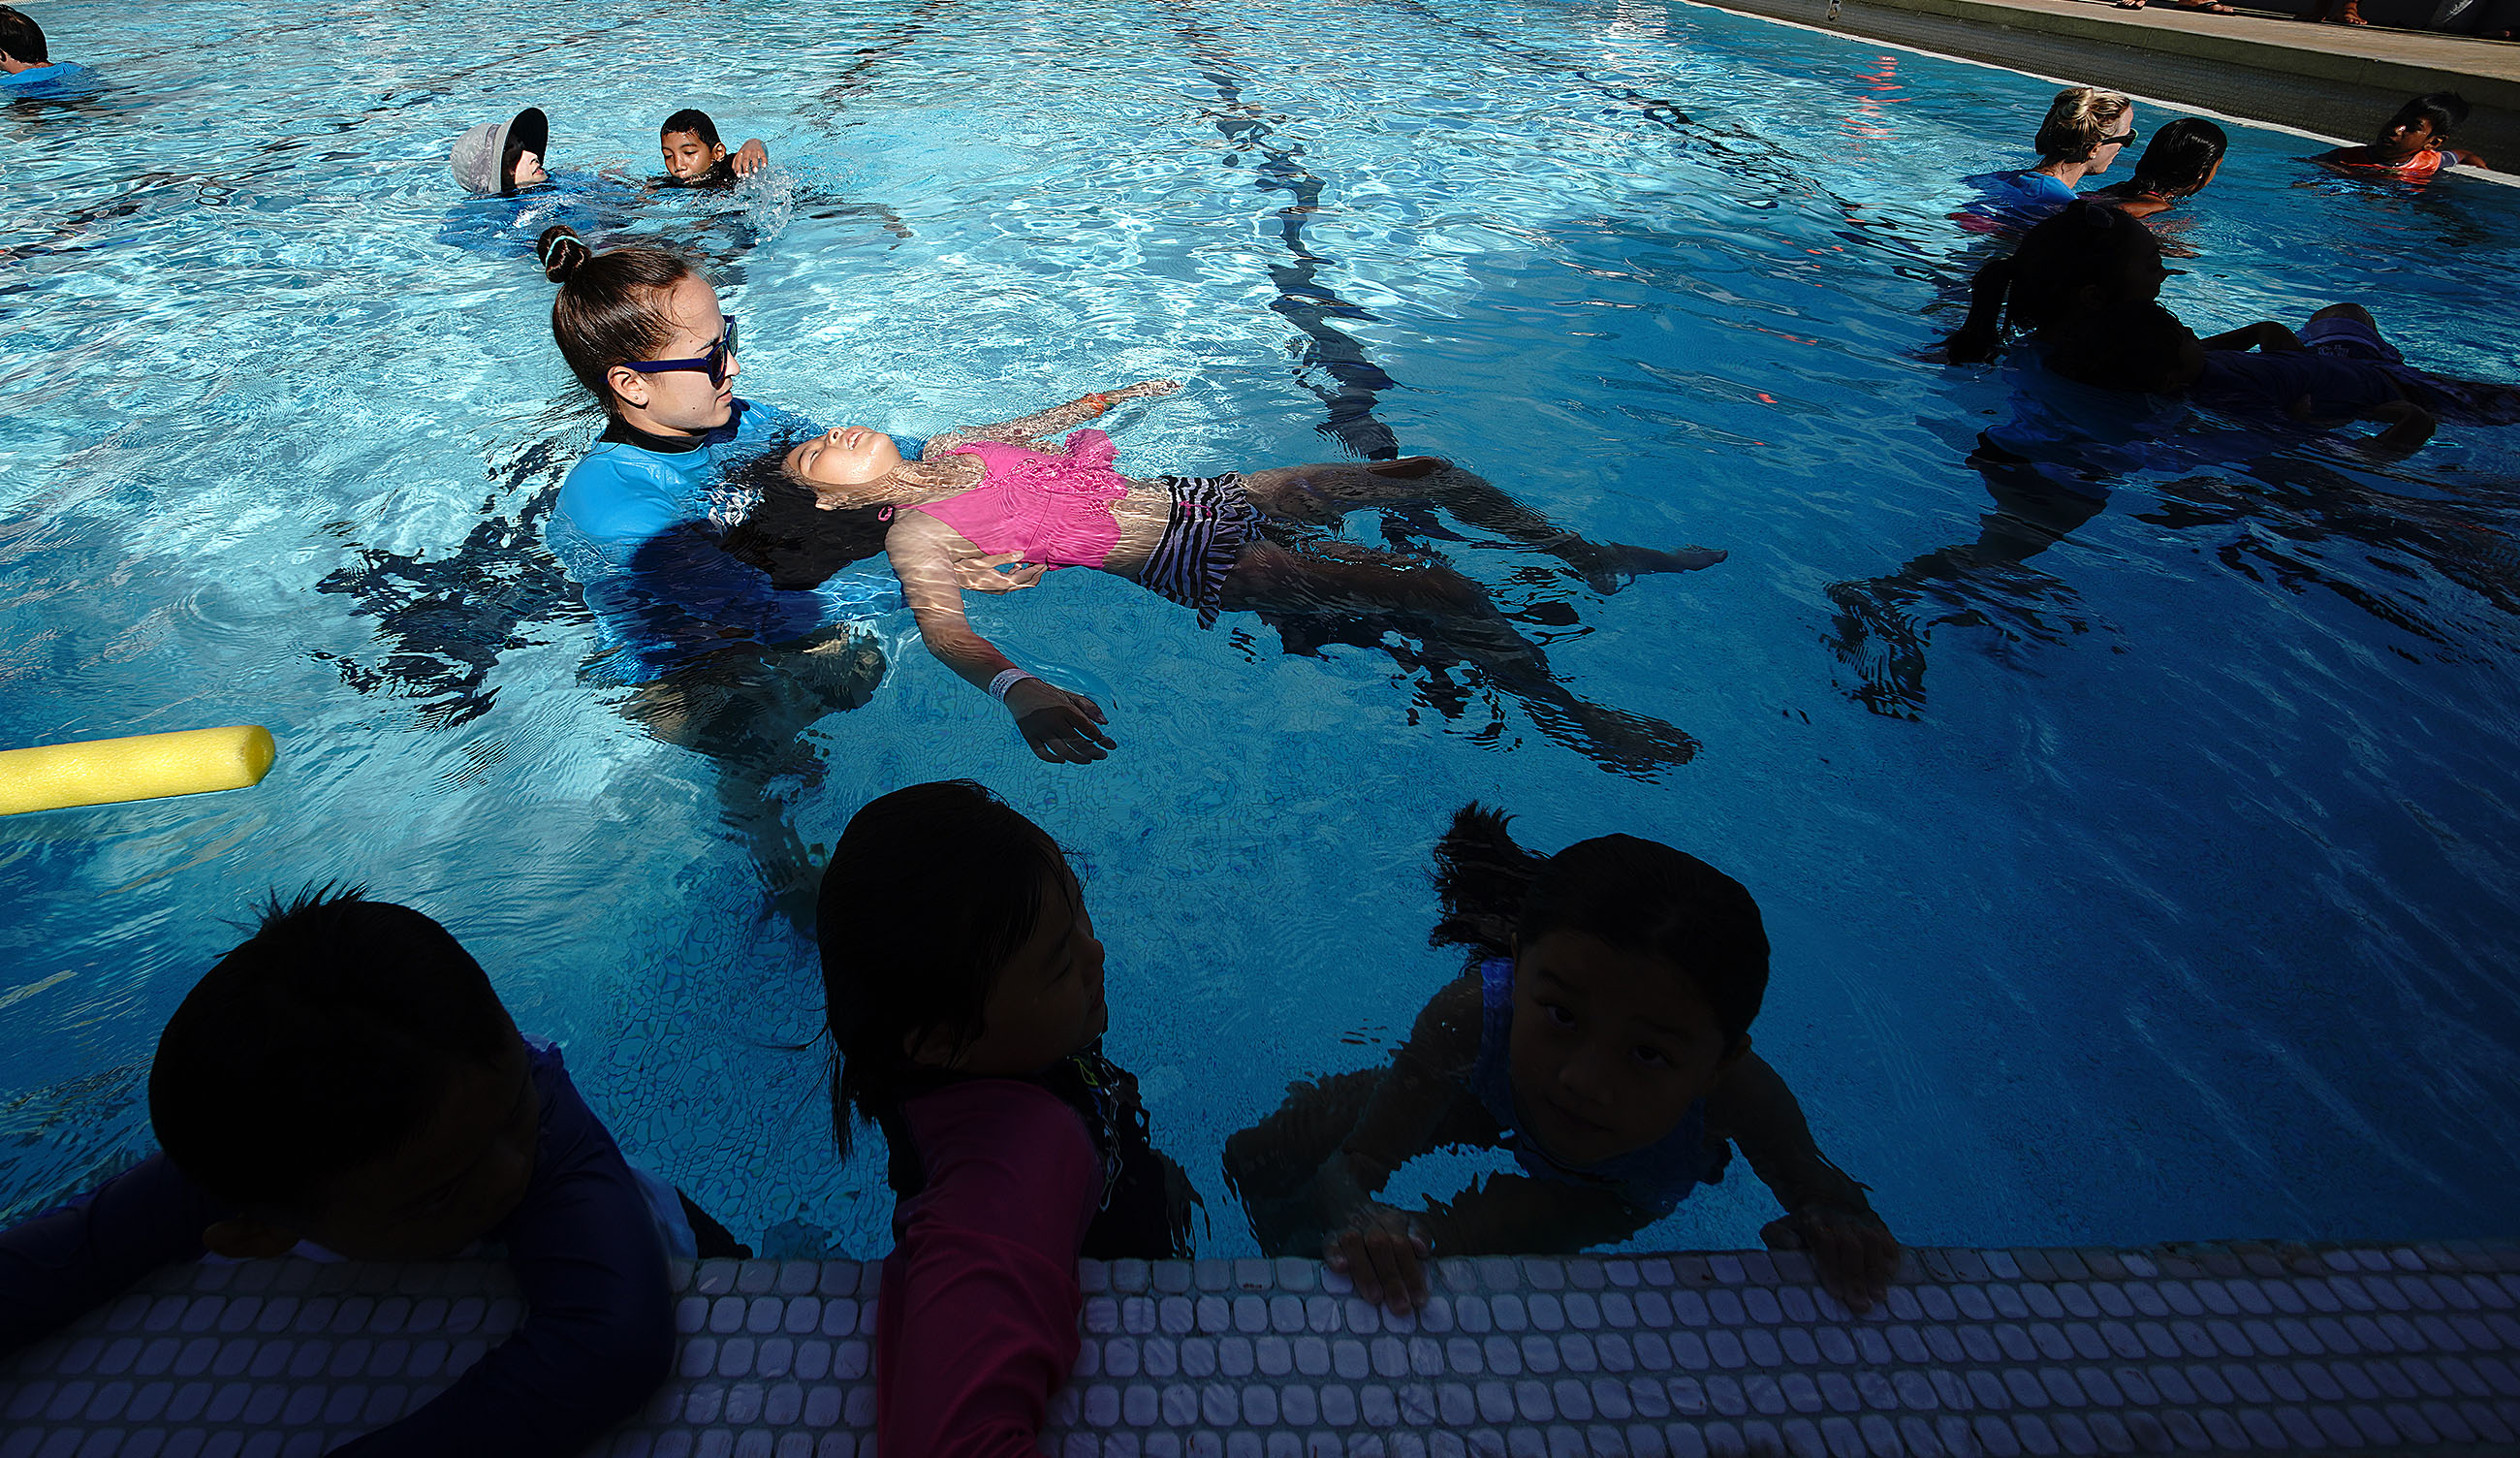 Palama Settlement pool swimming class instructor Tahni Kakazu assists student with back floating during class.